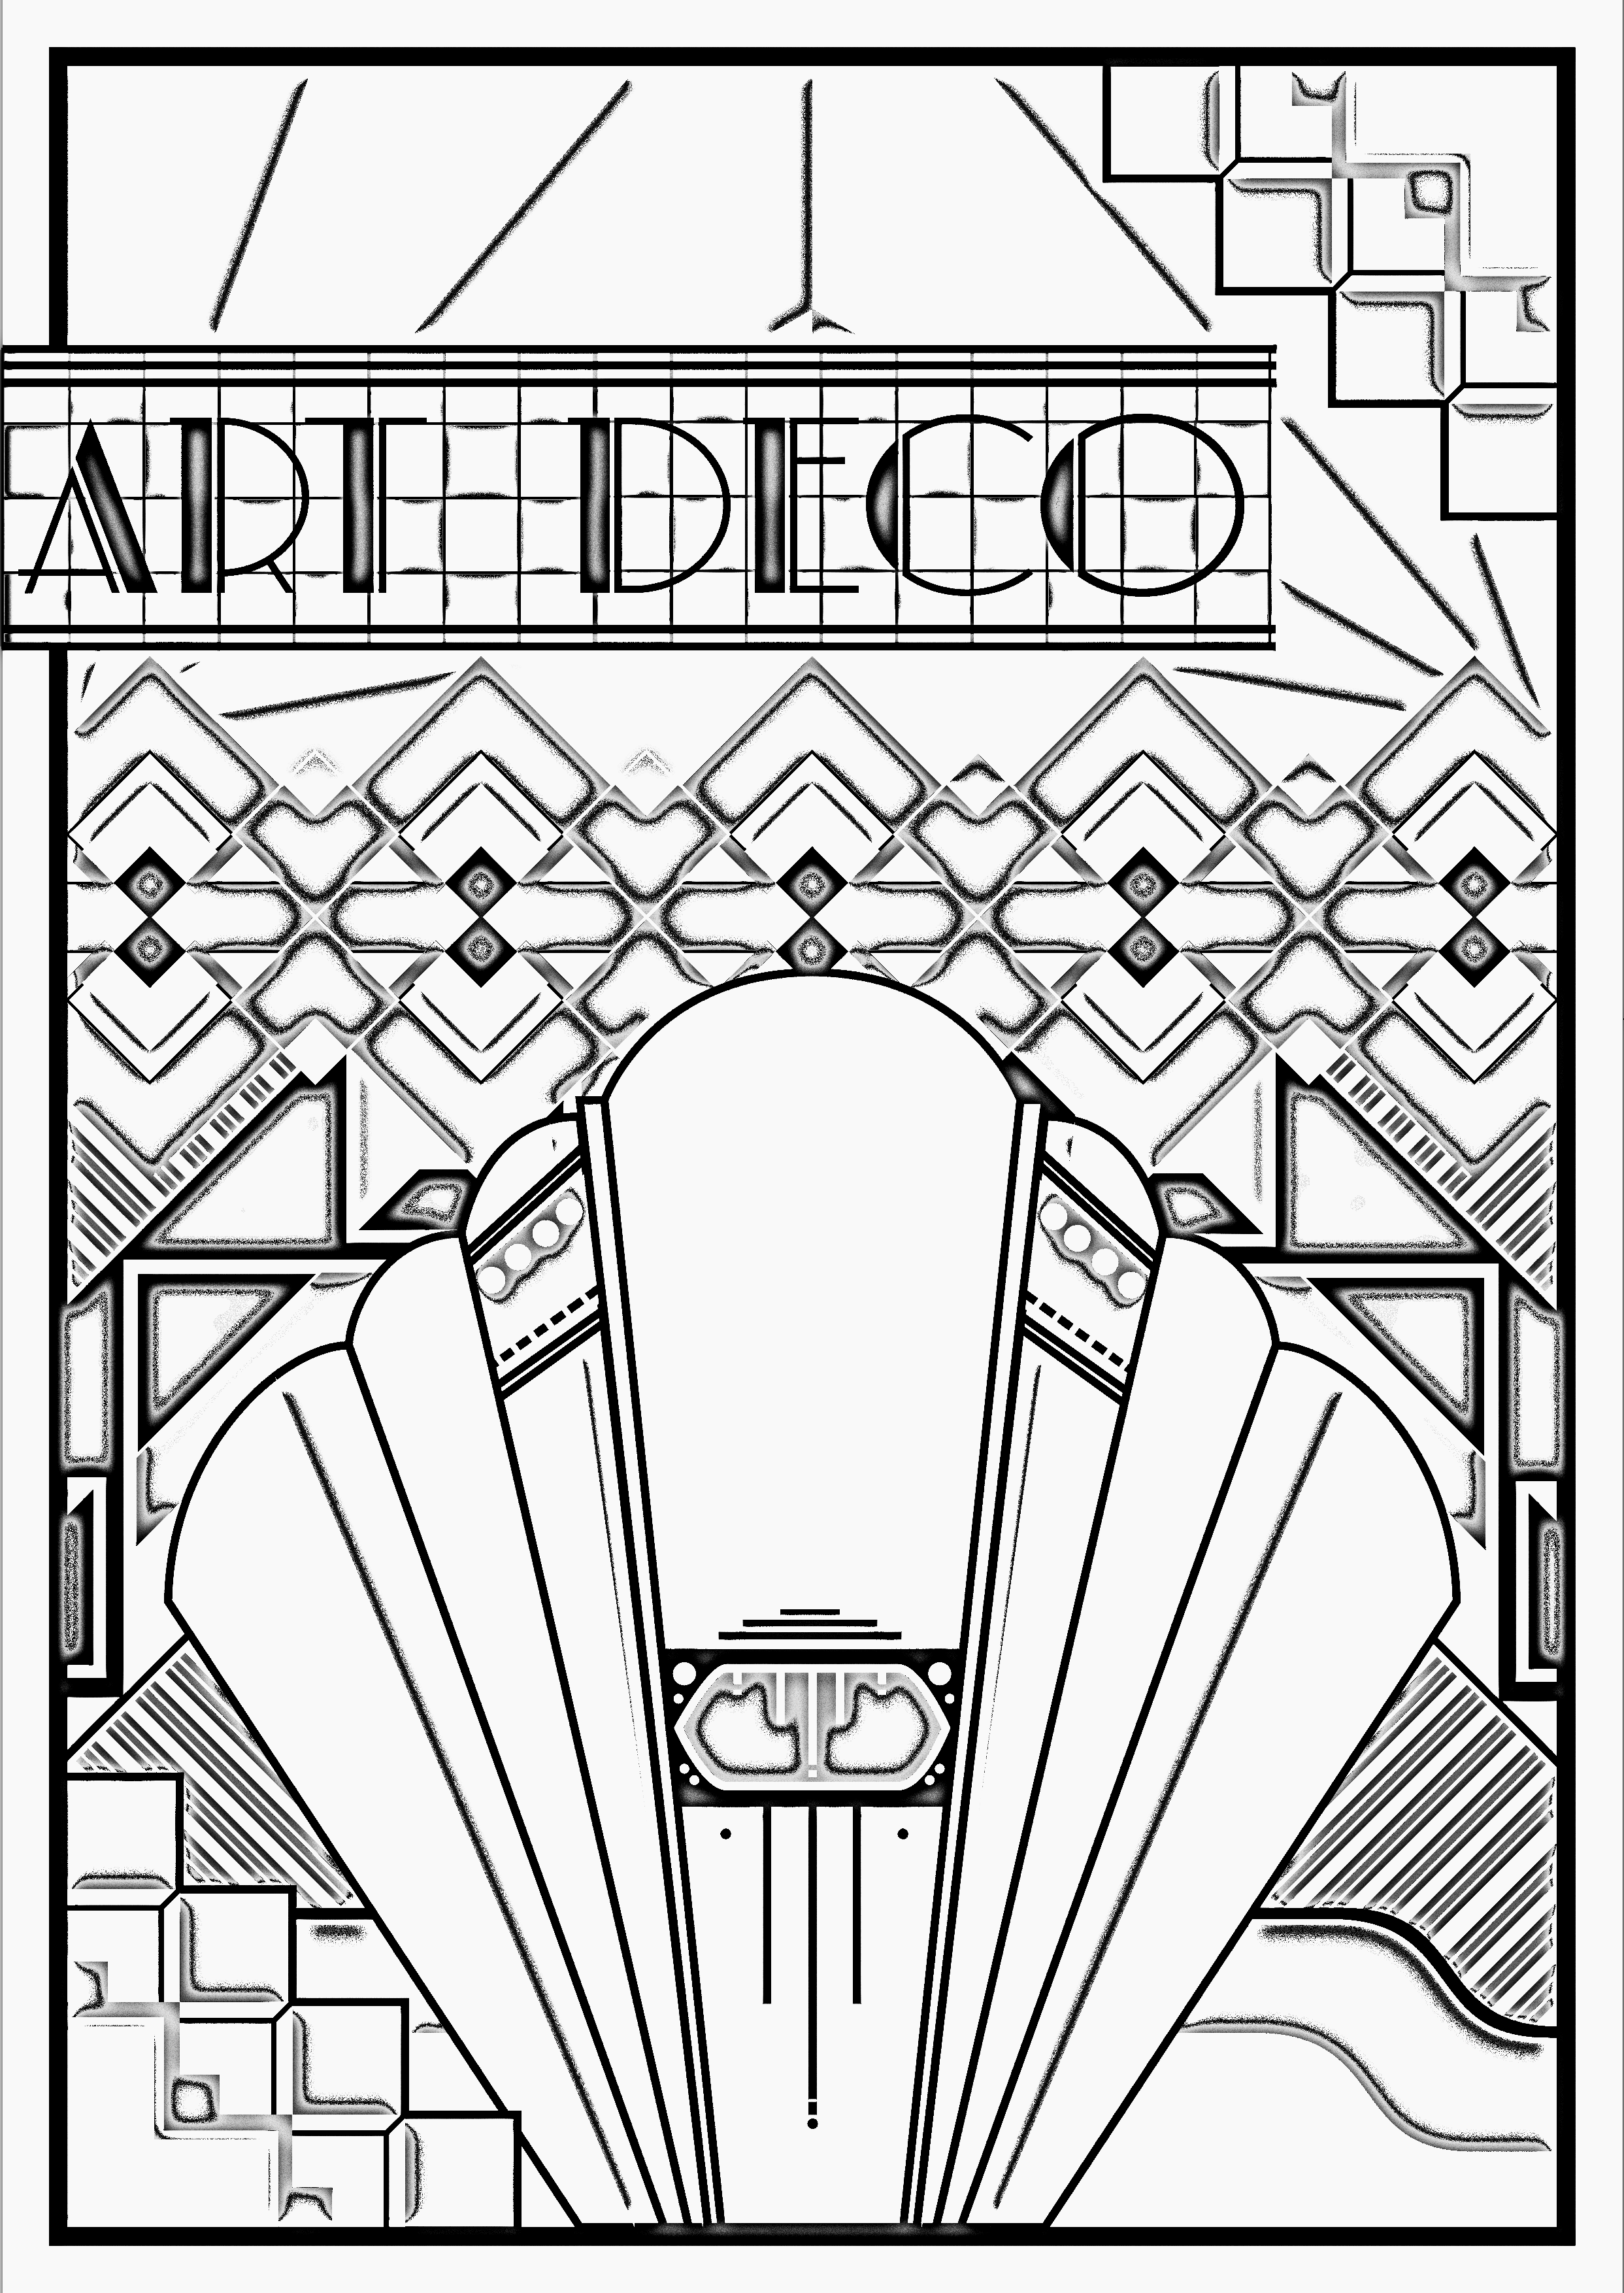 Free Art Deco coloring page. Exclusive content from www